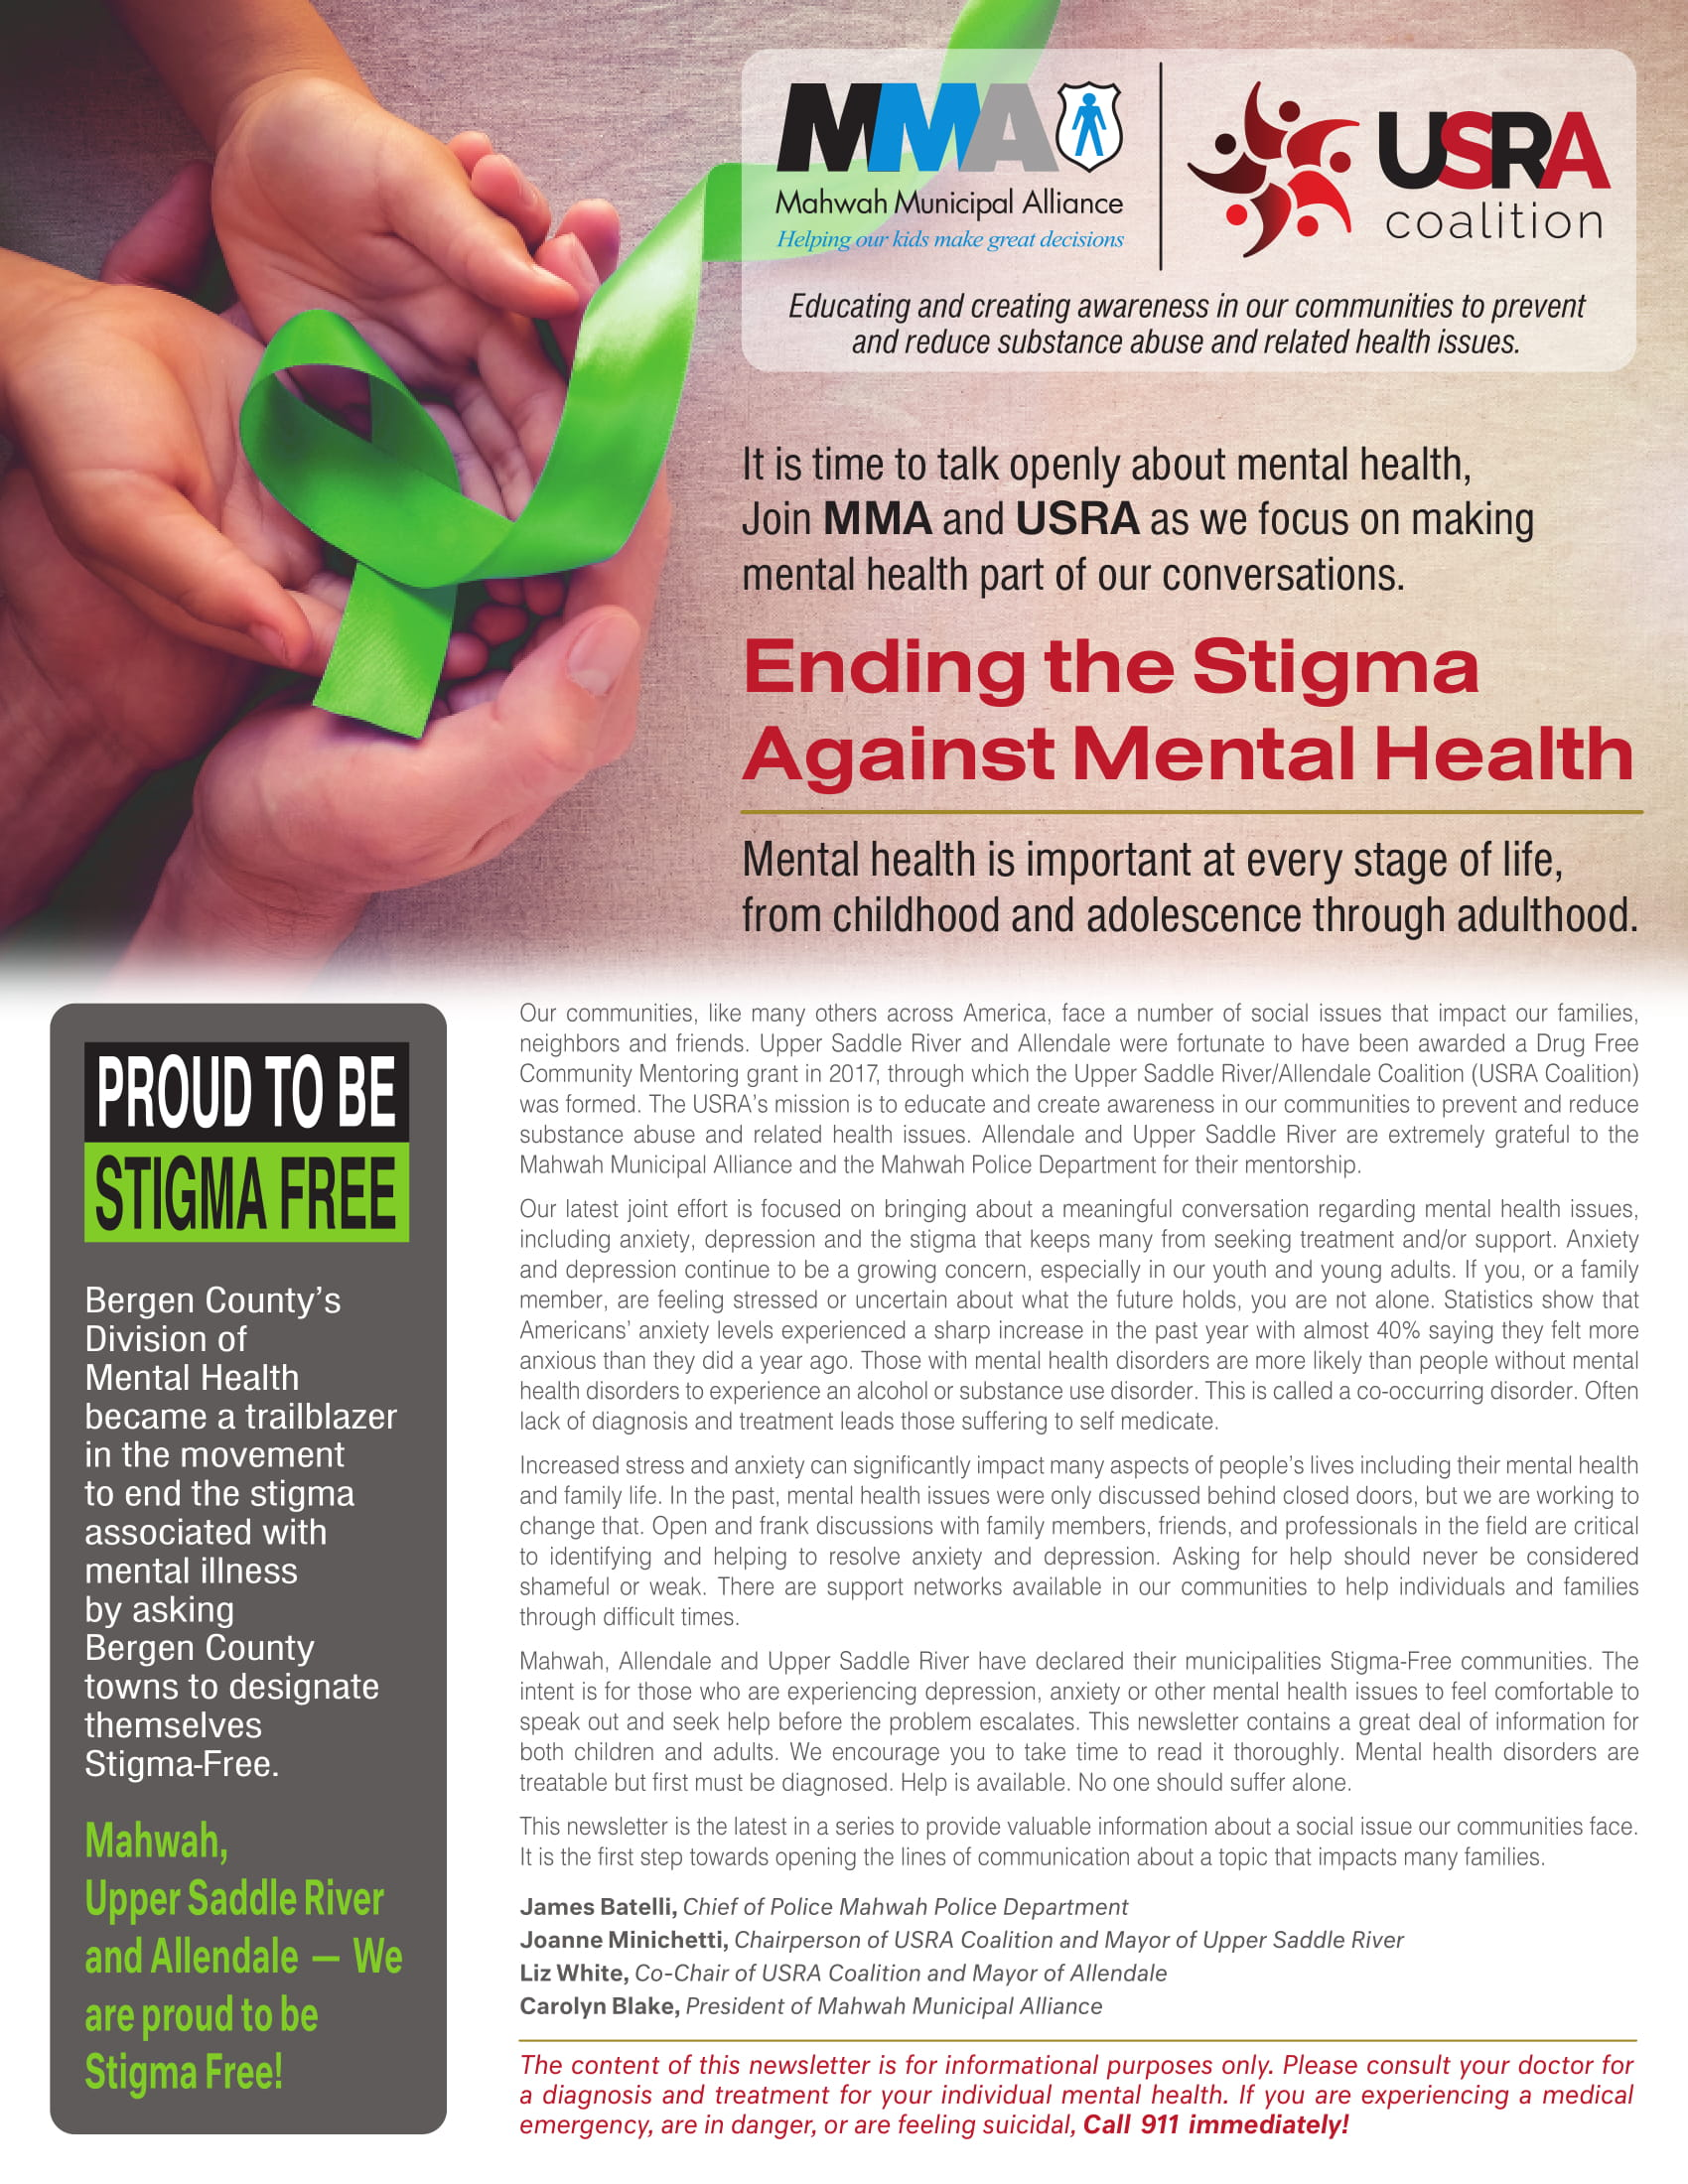 USRA Coalition Ending the Stigma